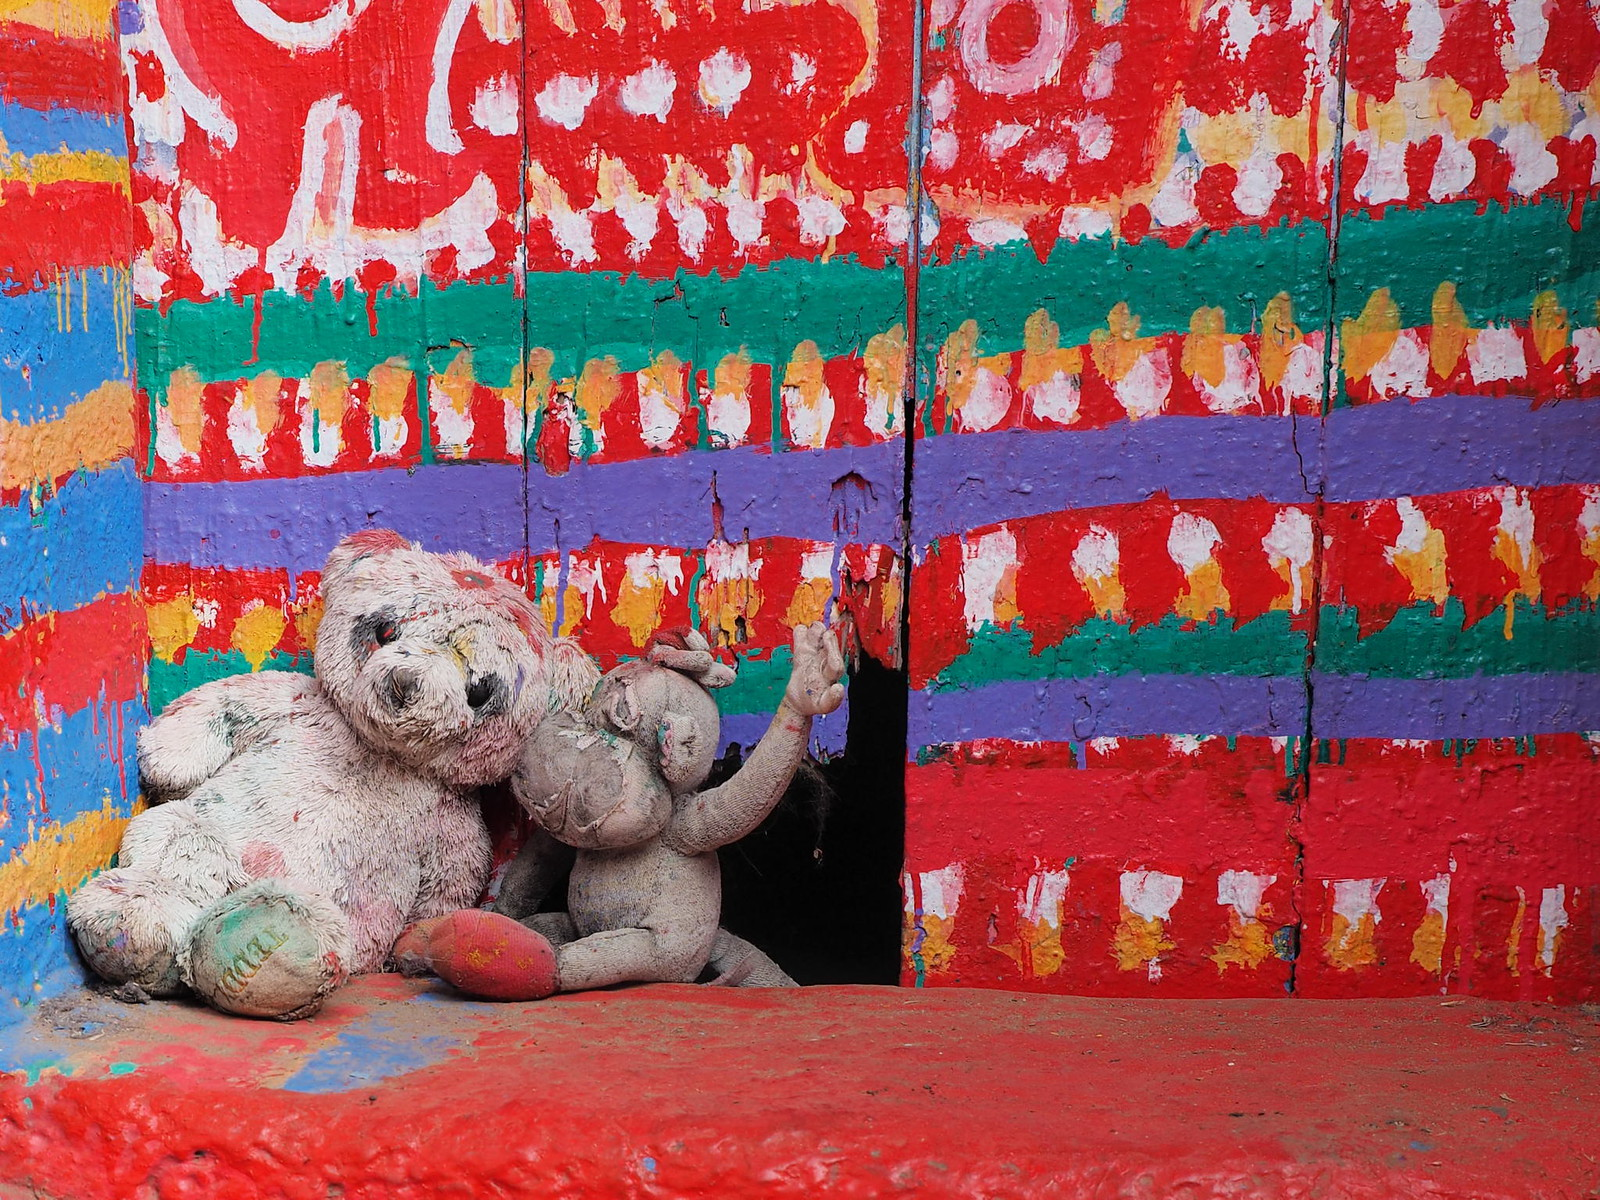 Abandoned dolls at Rainbow Village (彩虹眷村)